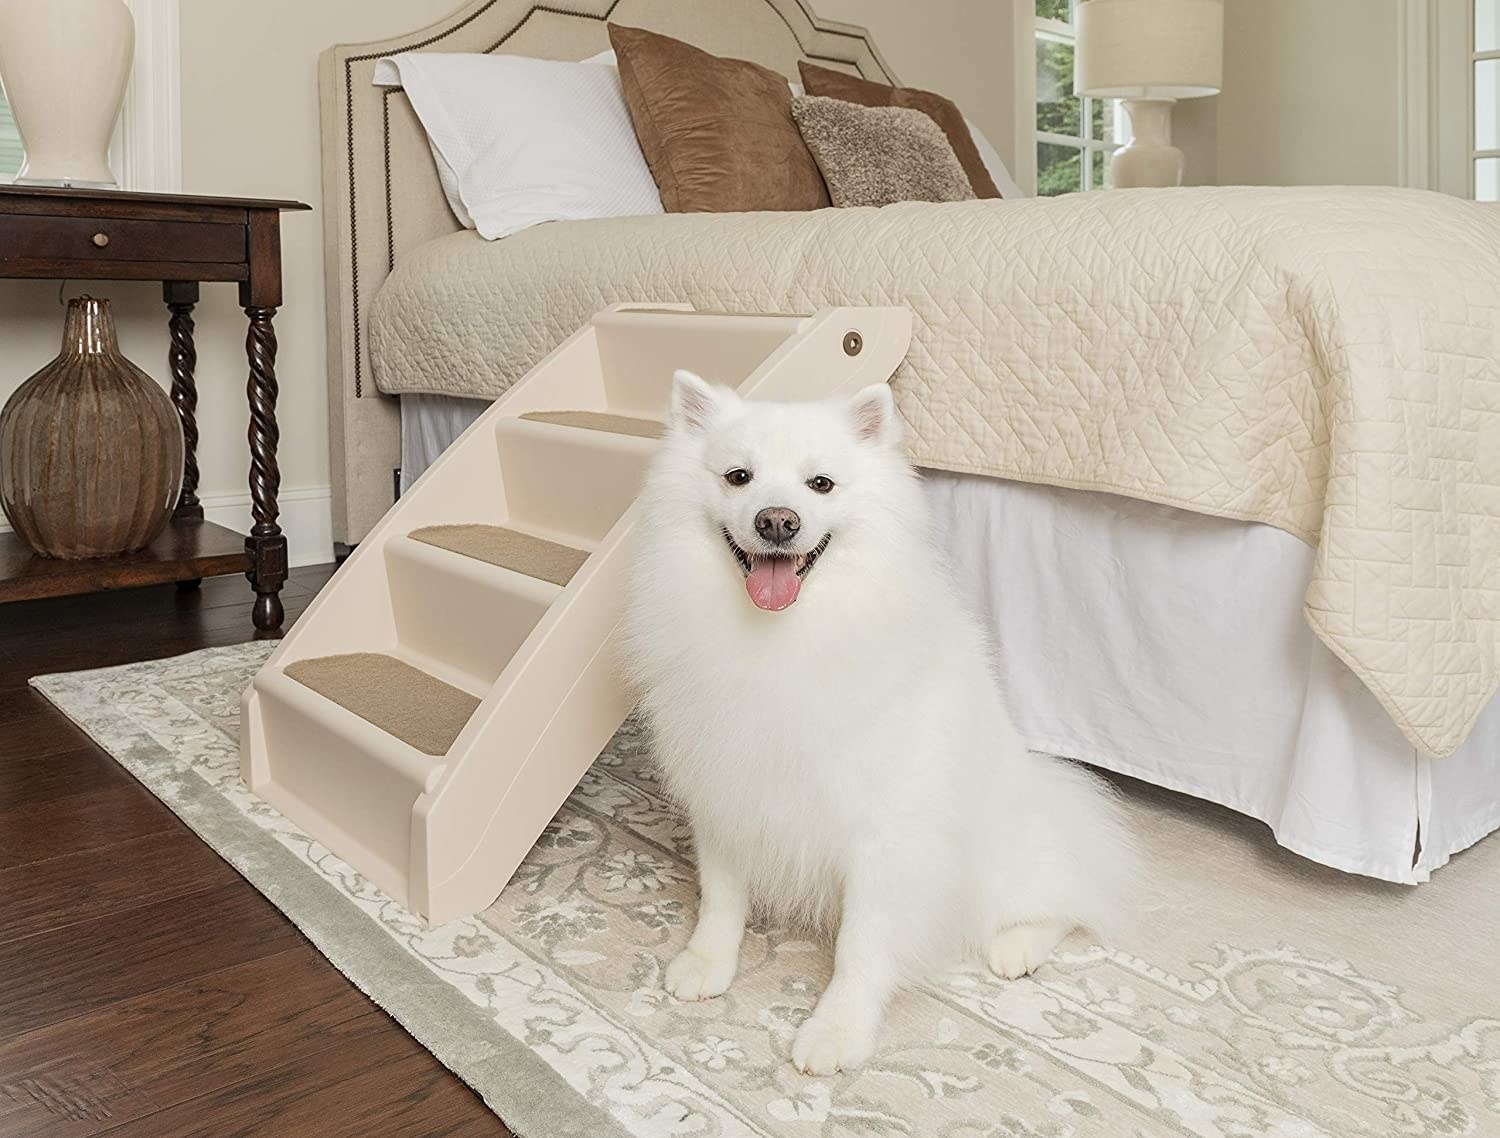 white dog standing next to dog stairs leading to the bed